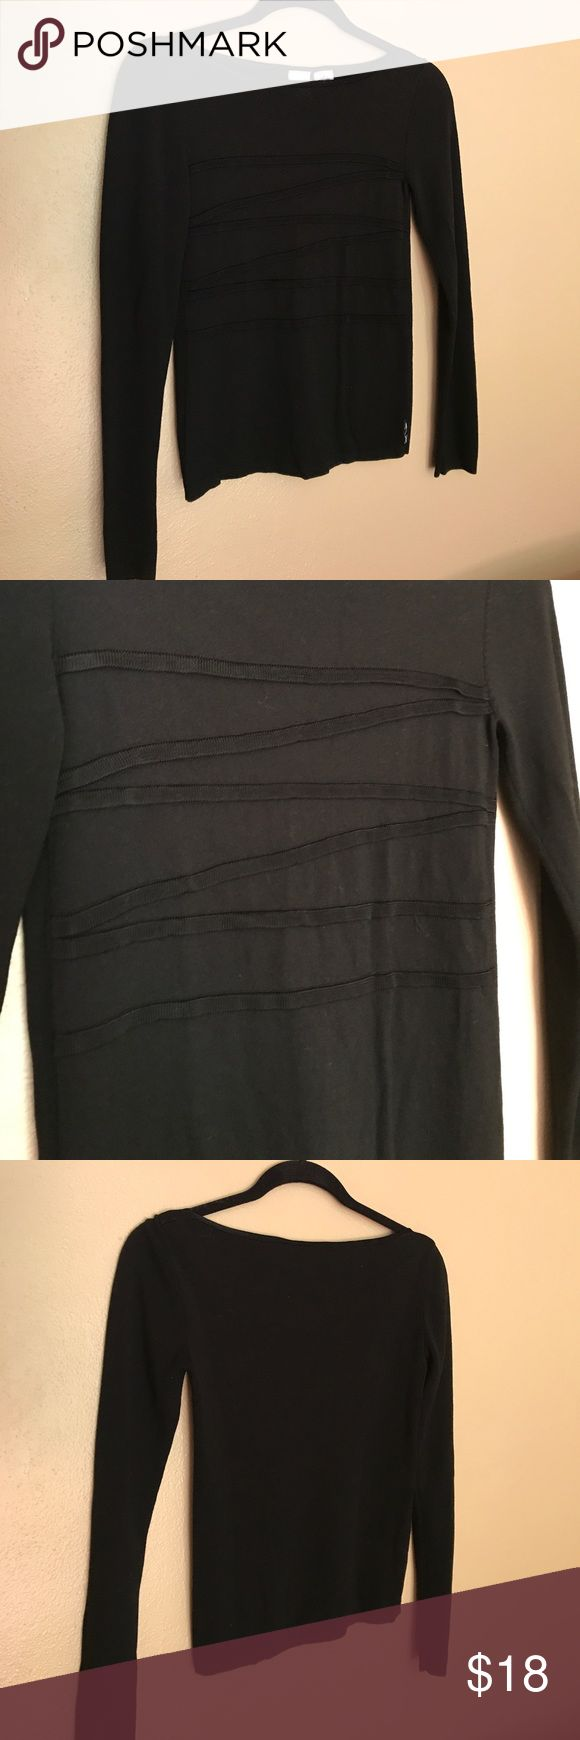 "ARMANI EXCHANGE TOP ARMANI EXCHANGE TOP. 14 1/2"" from under arm to under arm. 20 1/2"" from shoulder to bottom hem. 13 1/2"" across hem. 87% Rayon, 13% Polyester. Excellent Condition A/X Armani Exchange Tops"